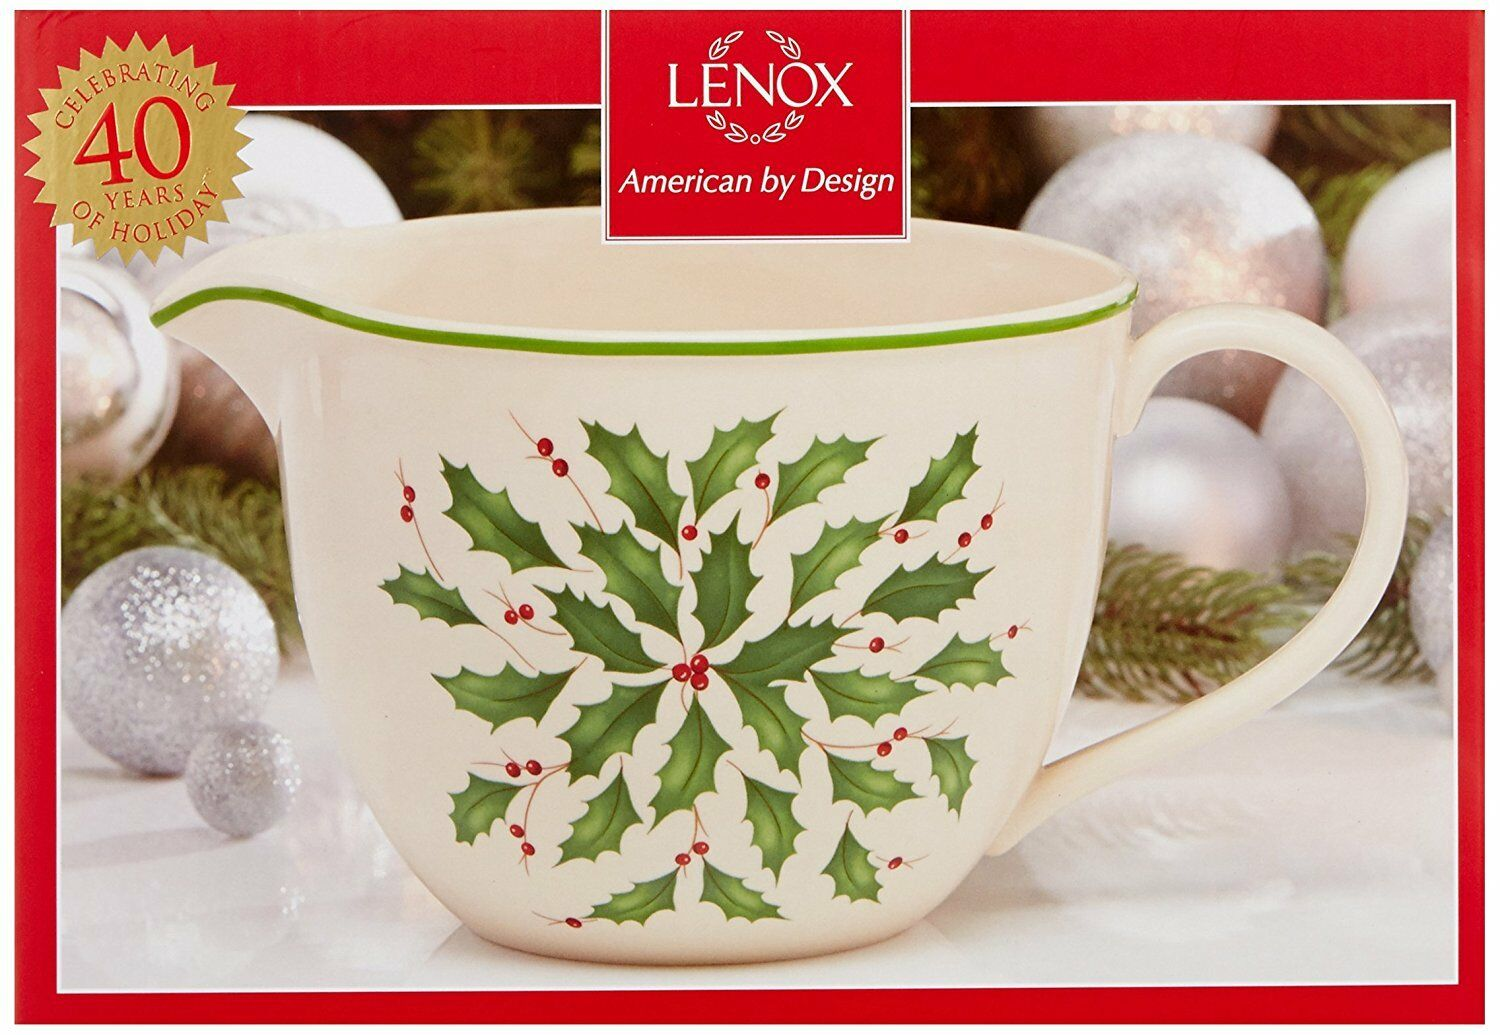 80 NEW in Box Lenox Holiday Large Batter Bowl 64 oz Perfect GIFT